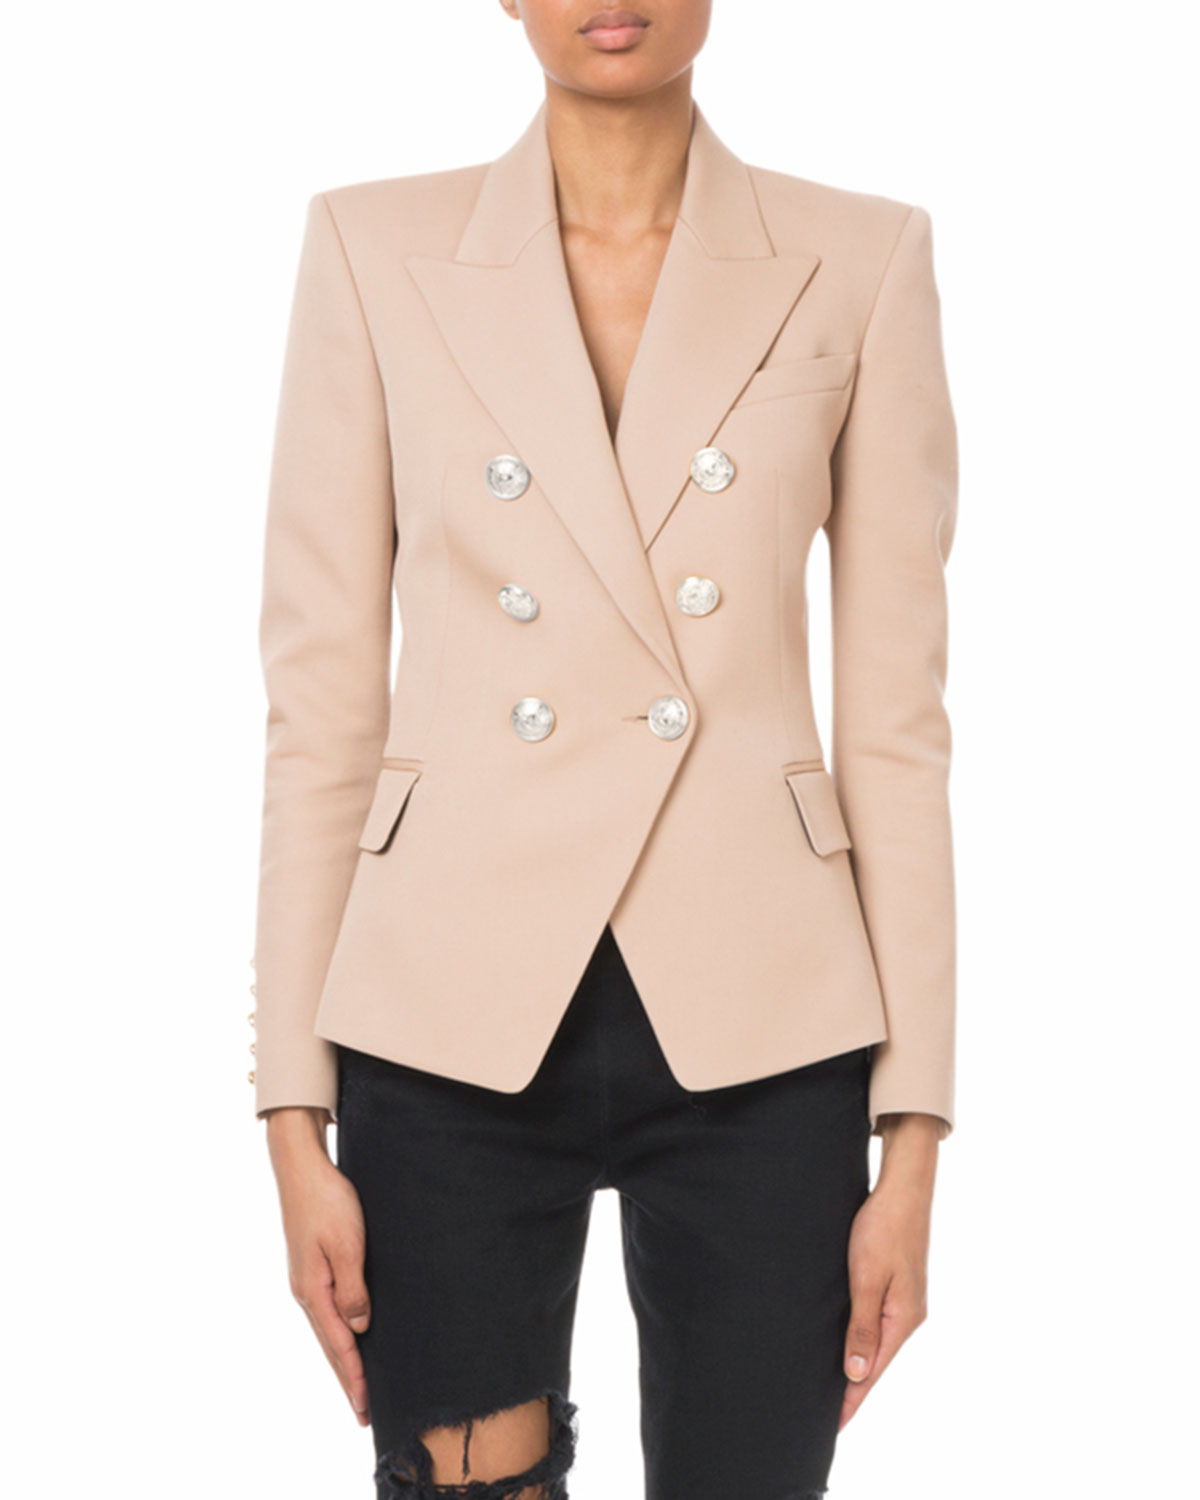 Double Breasted Button Classic Blazer by Balmain